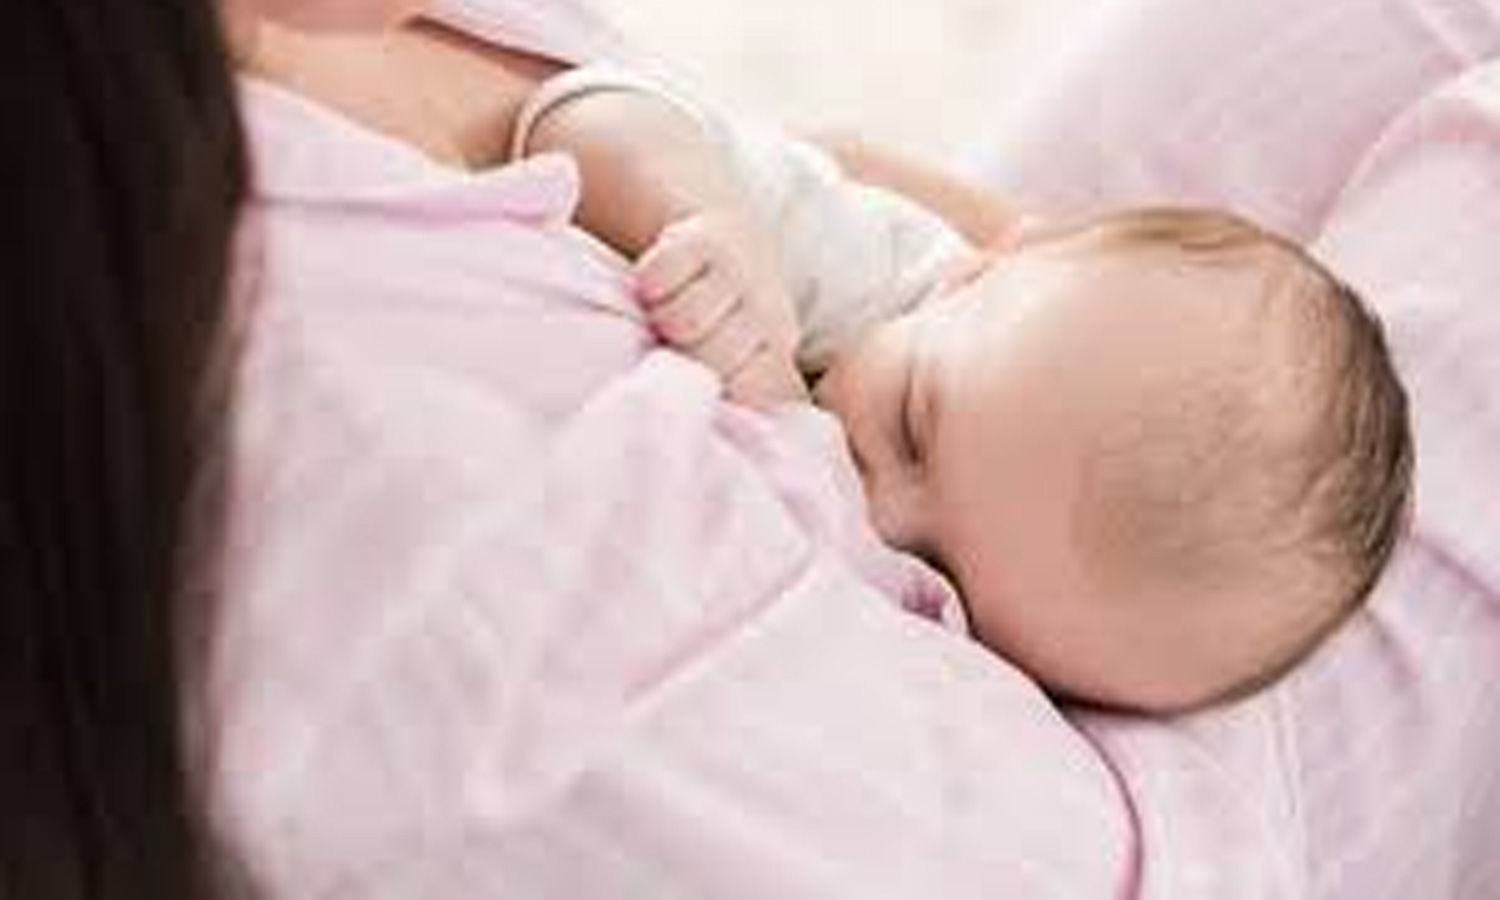 Breastfeeding protects infants  against human viruses even when    mixed with formula